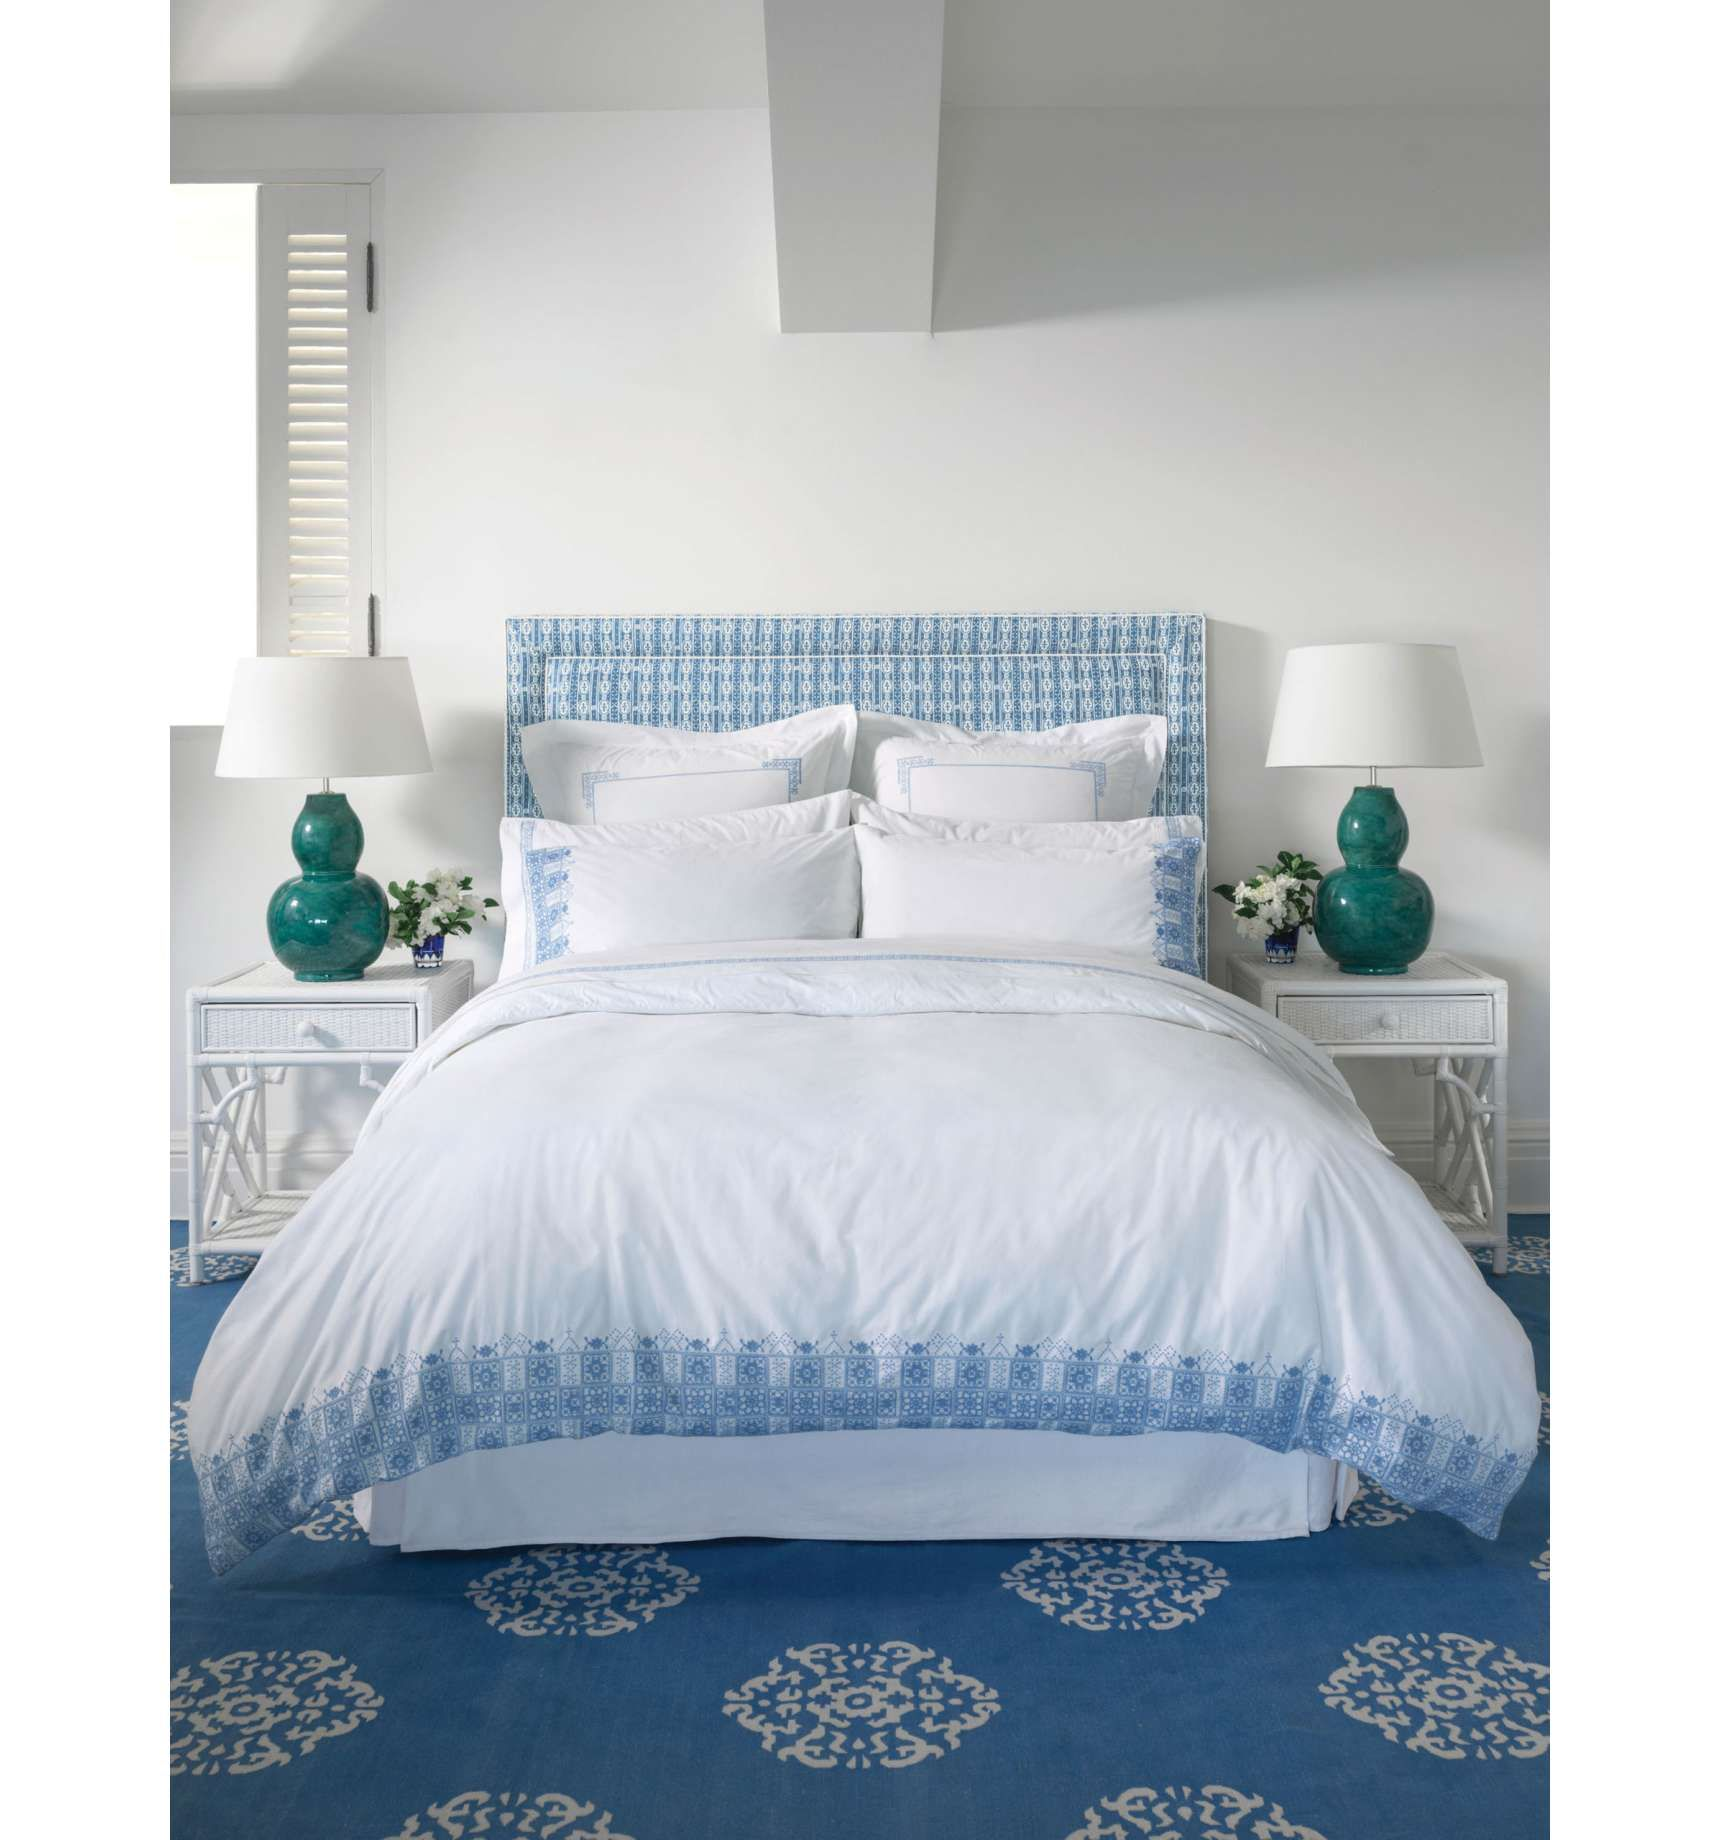 Amalfi QB QUILT COVER SET | David Jones | For the bedroom ... : quilt cover sets david jones - Adamdwight.com